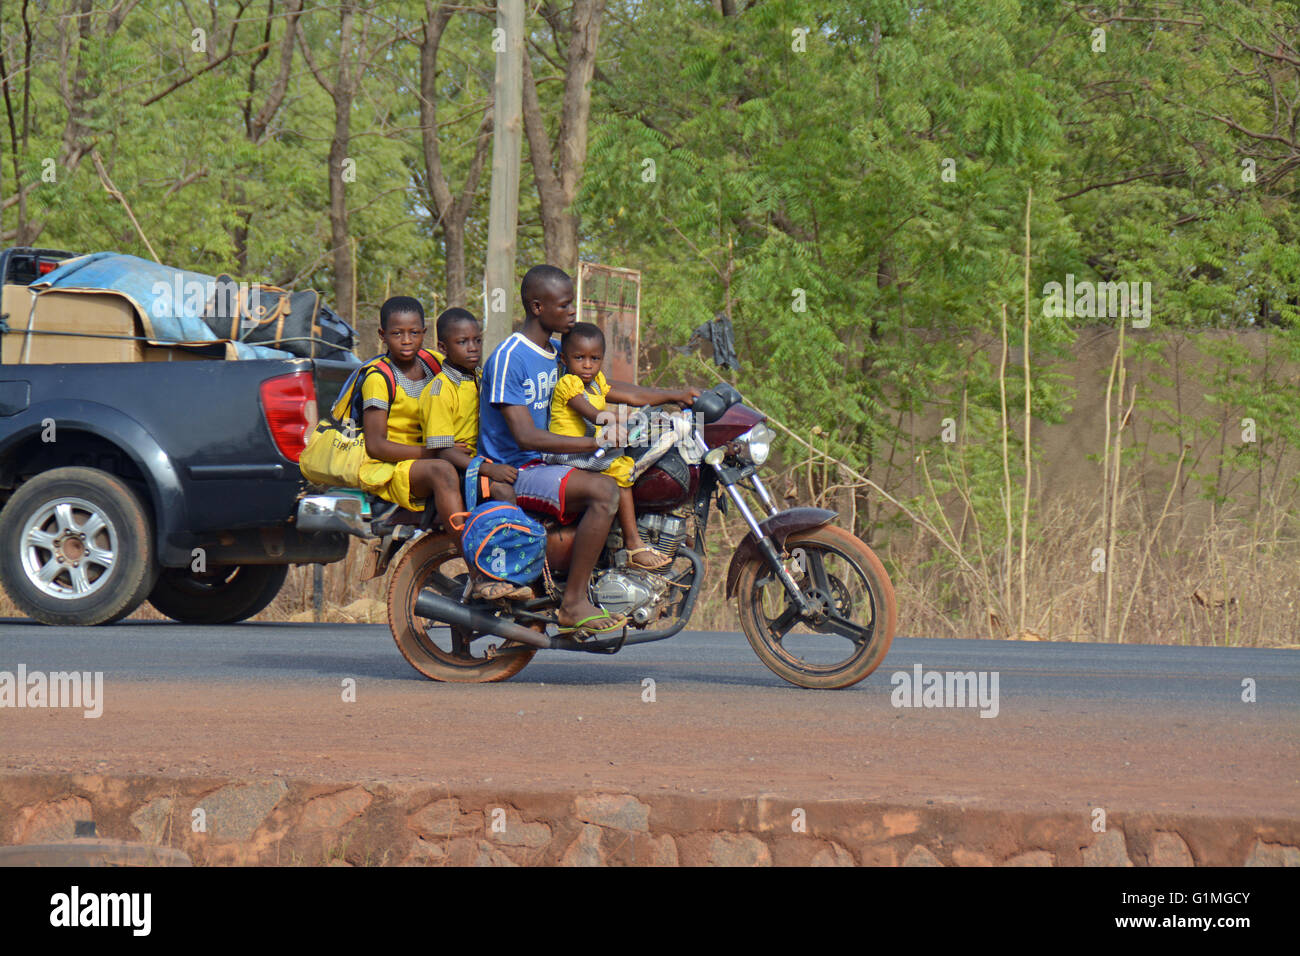 3 School kids in Ghana, being pick up with an small motorbike - Stock Image